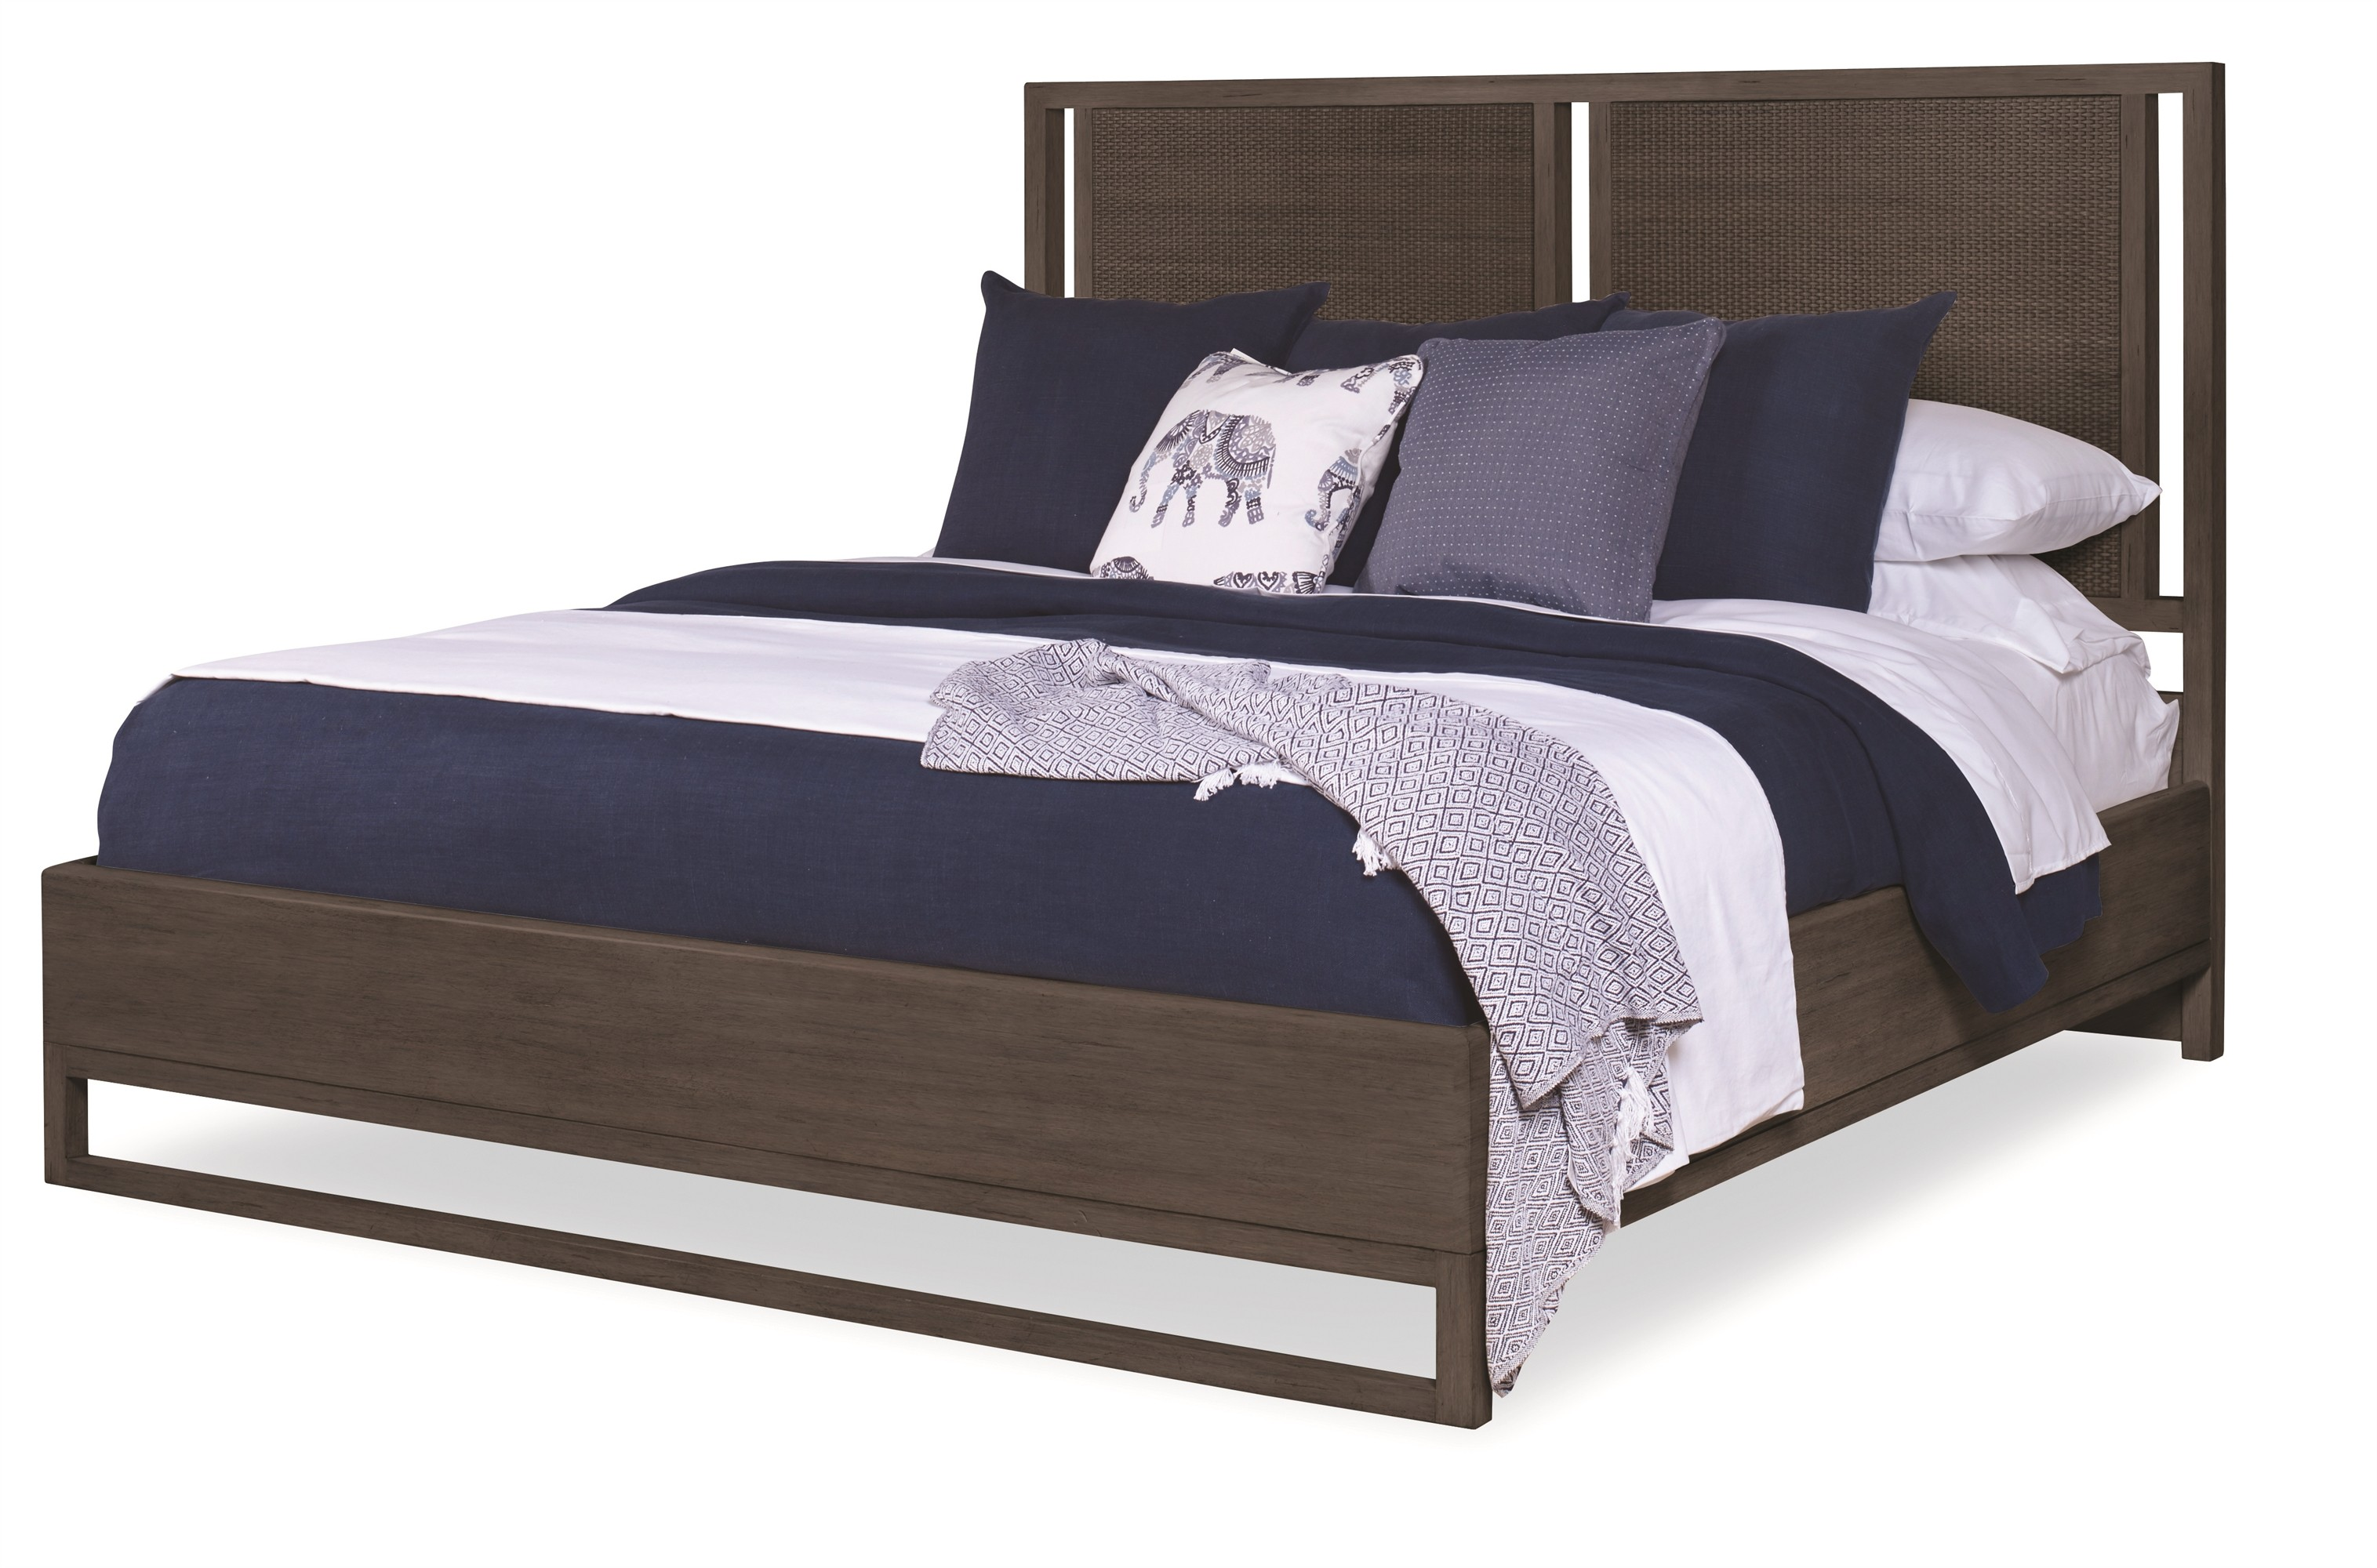 Chatham Bed-Queen-Mink Grey (Lw-550-113)